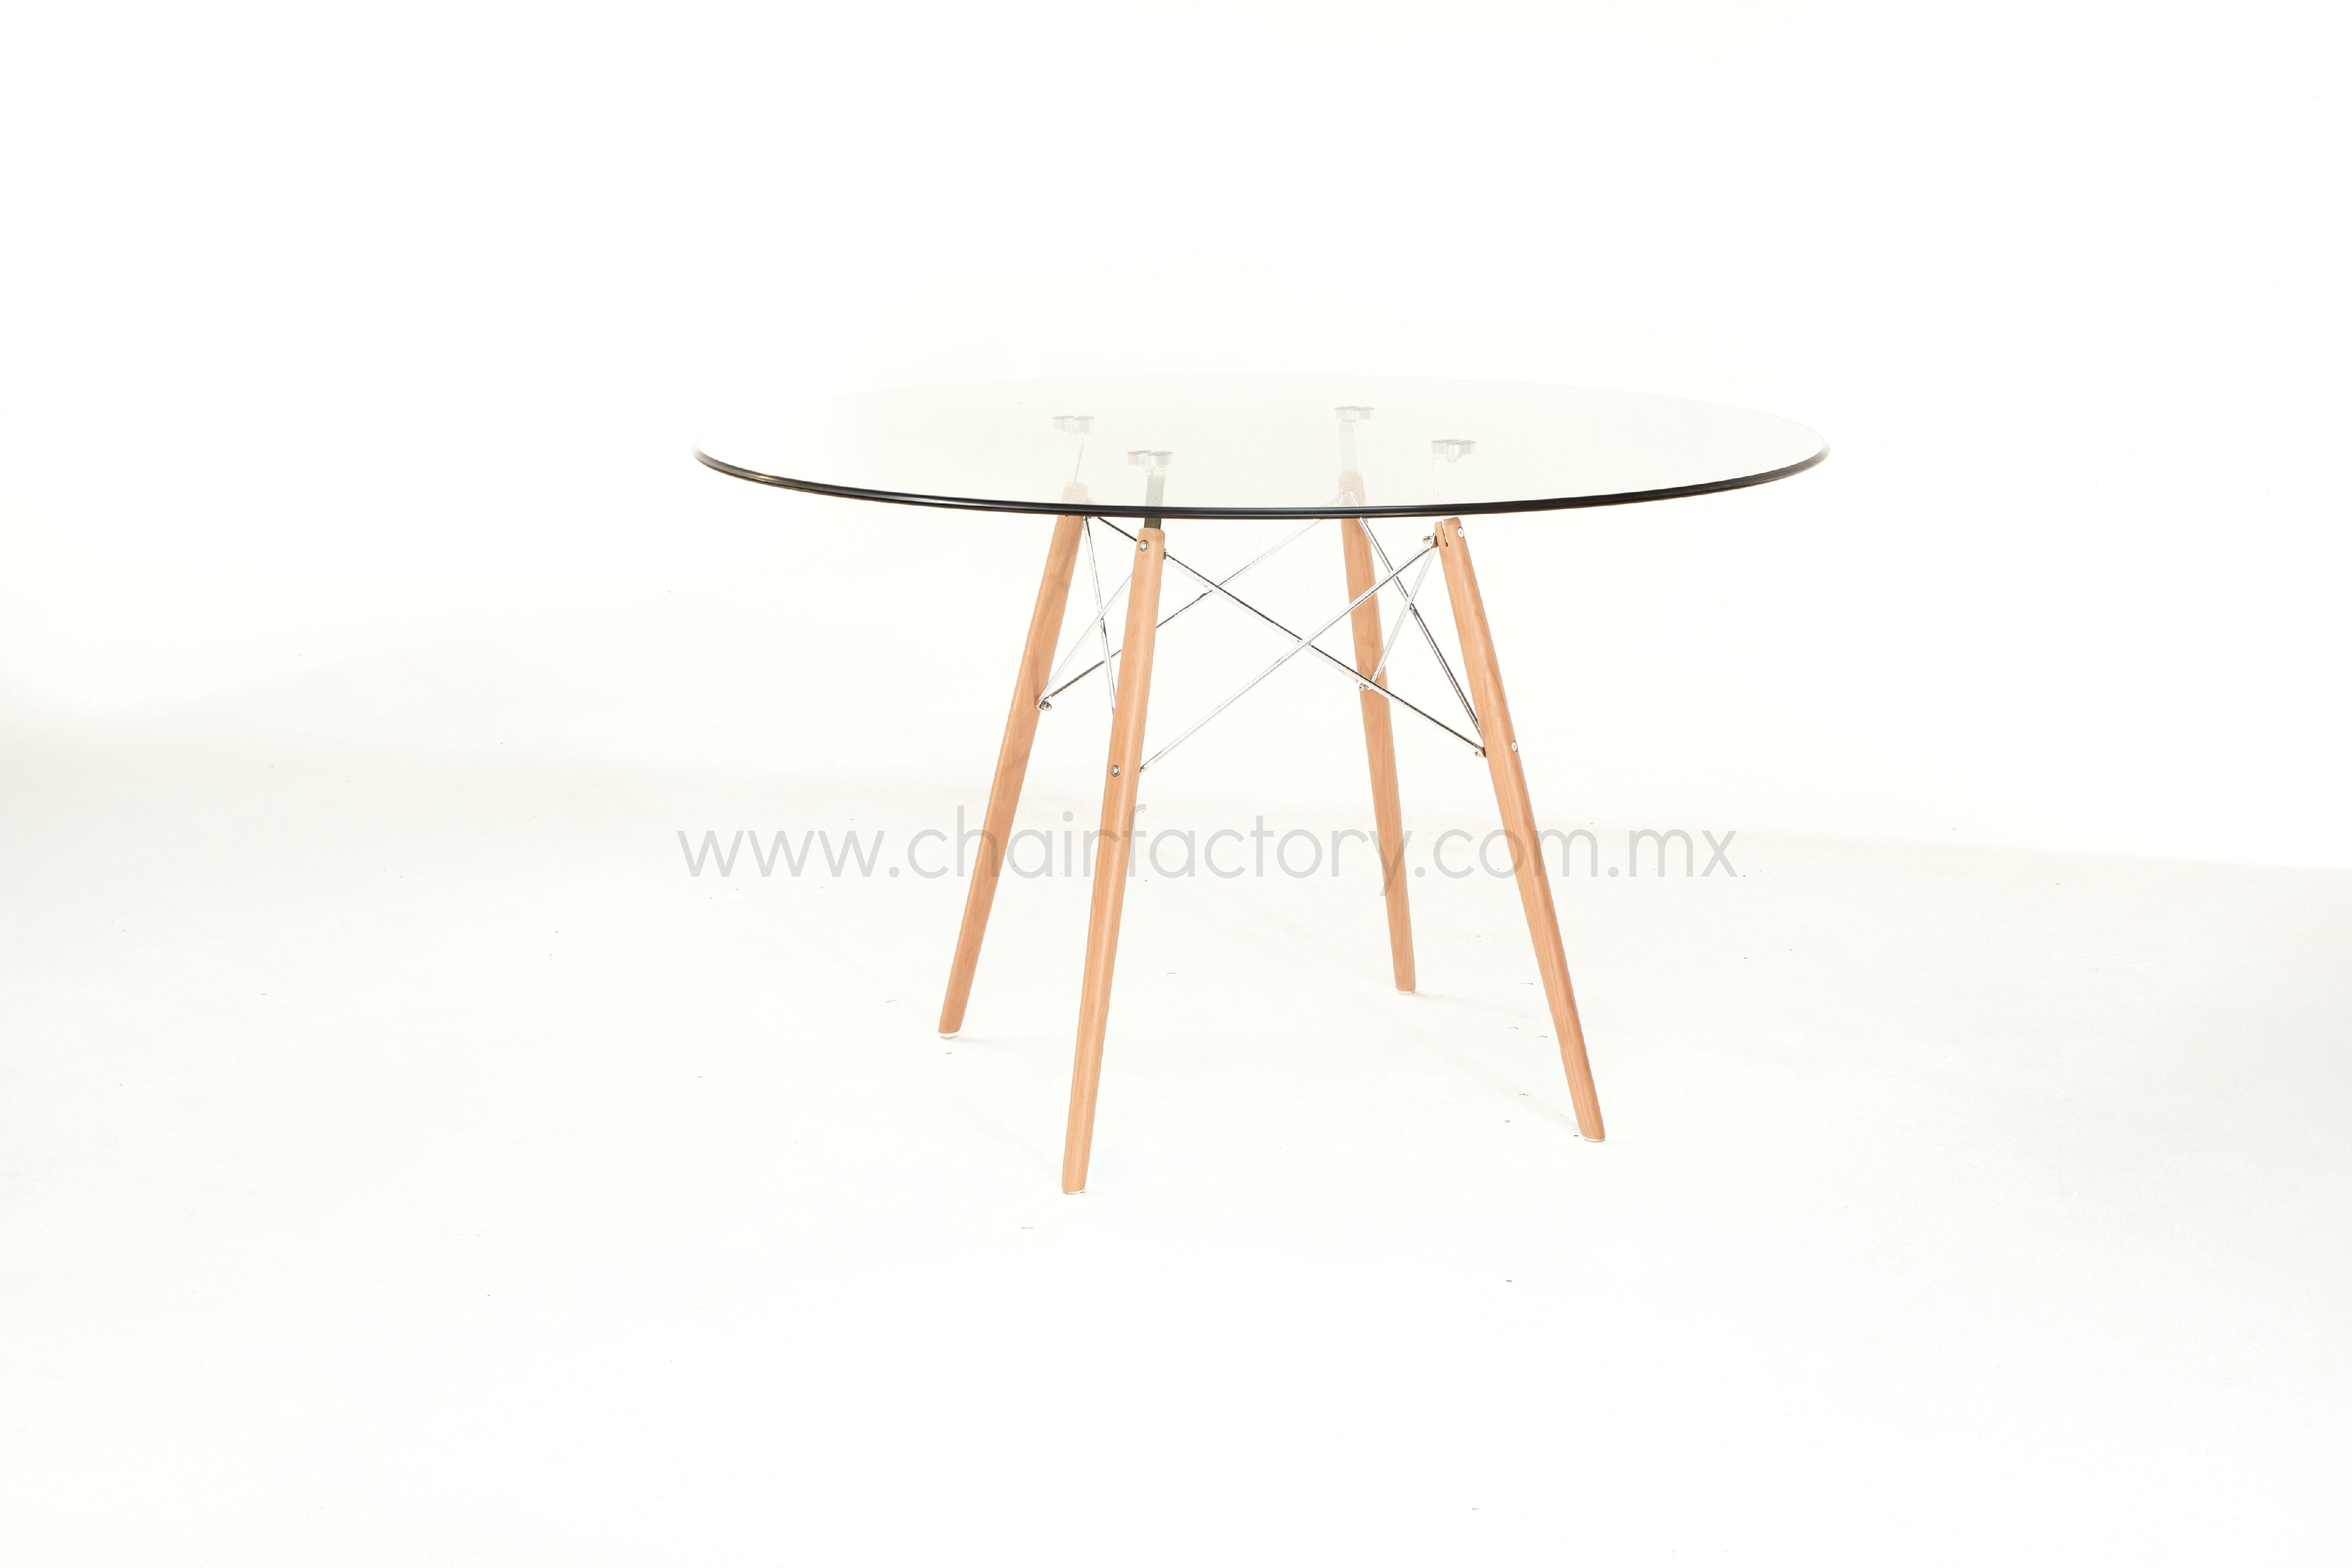 Mesa charles cristal 120 cm chair factory for Mesa cristal 90 cm